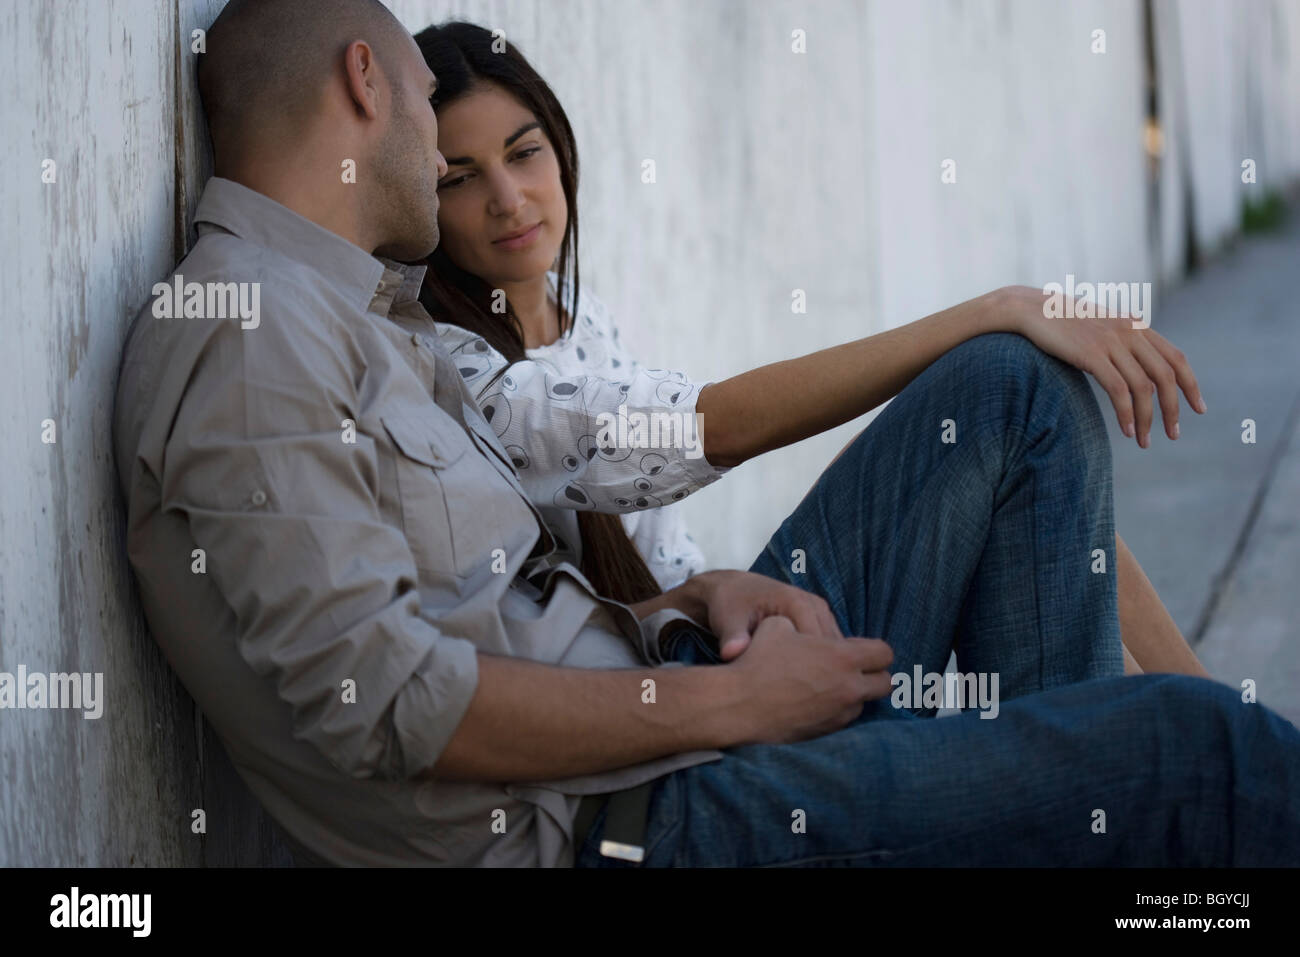 Young couple sitting side by side on ground, leaning against wall having conversation - Stock Image